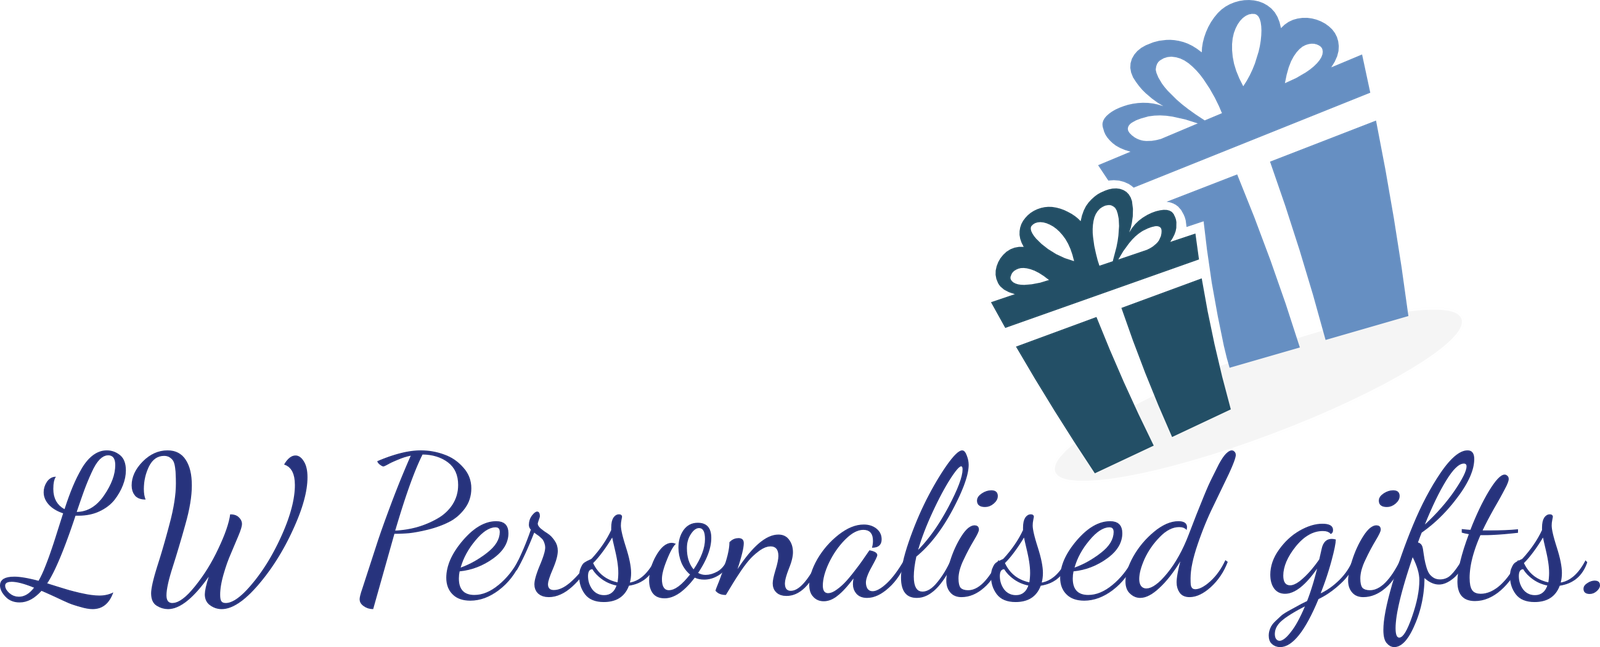 LW Personalised gifts